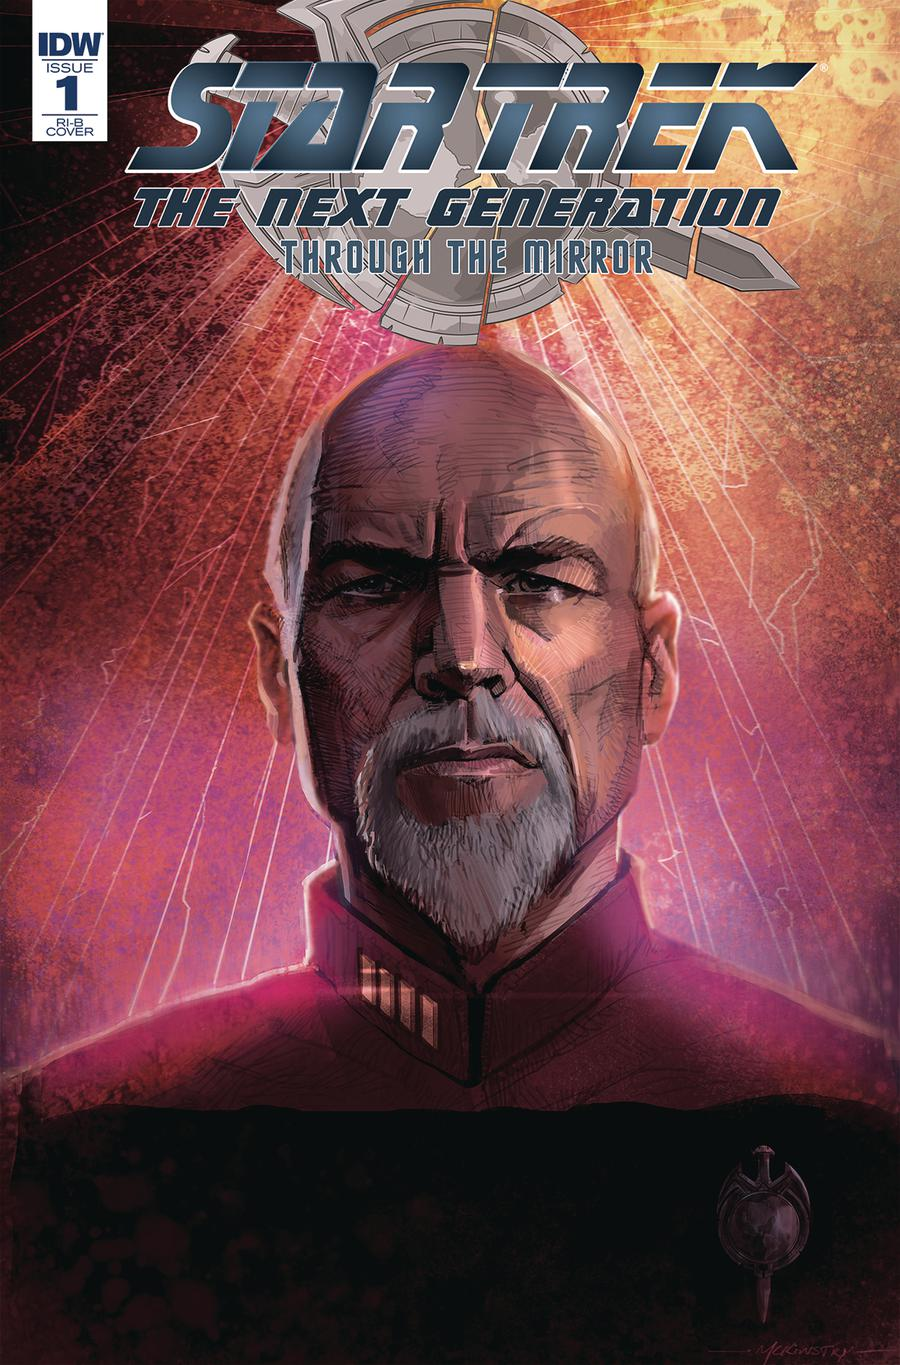 Star Trek The Next Generation Through The Mirror #1 Cover D Incentive Peter McKinstry Portrait Variant Cover